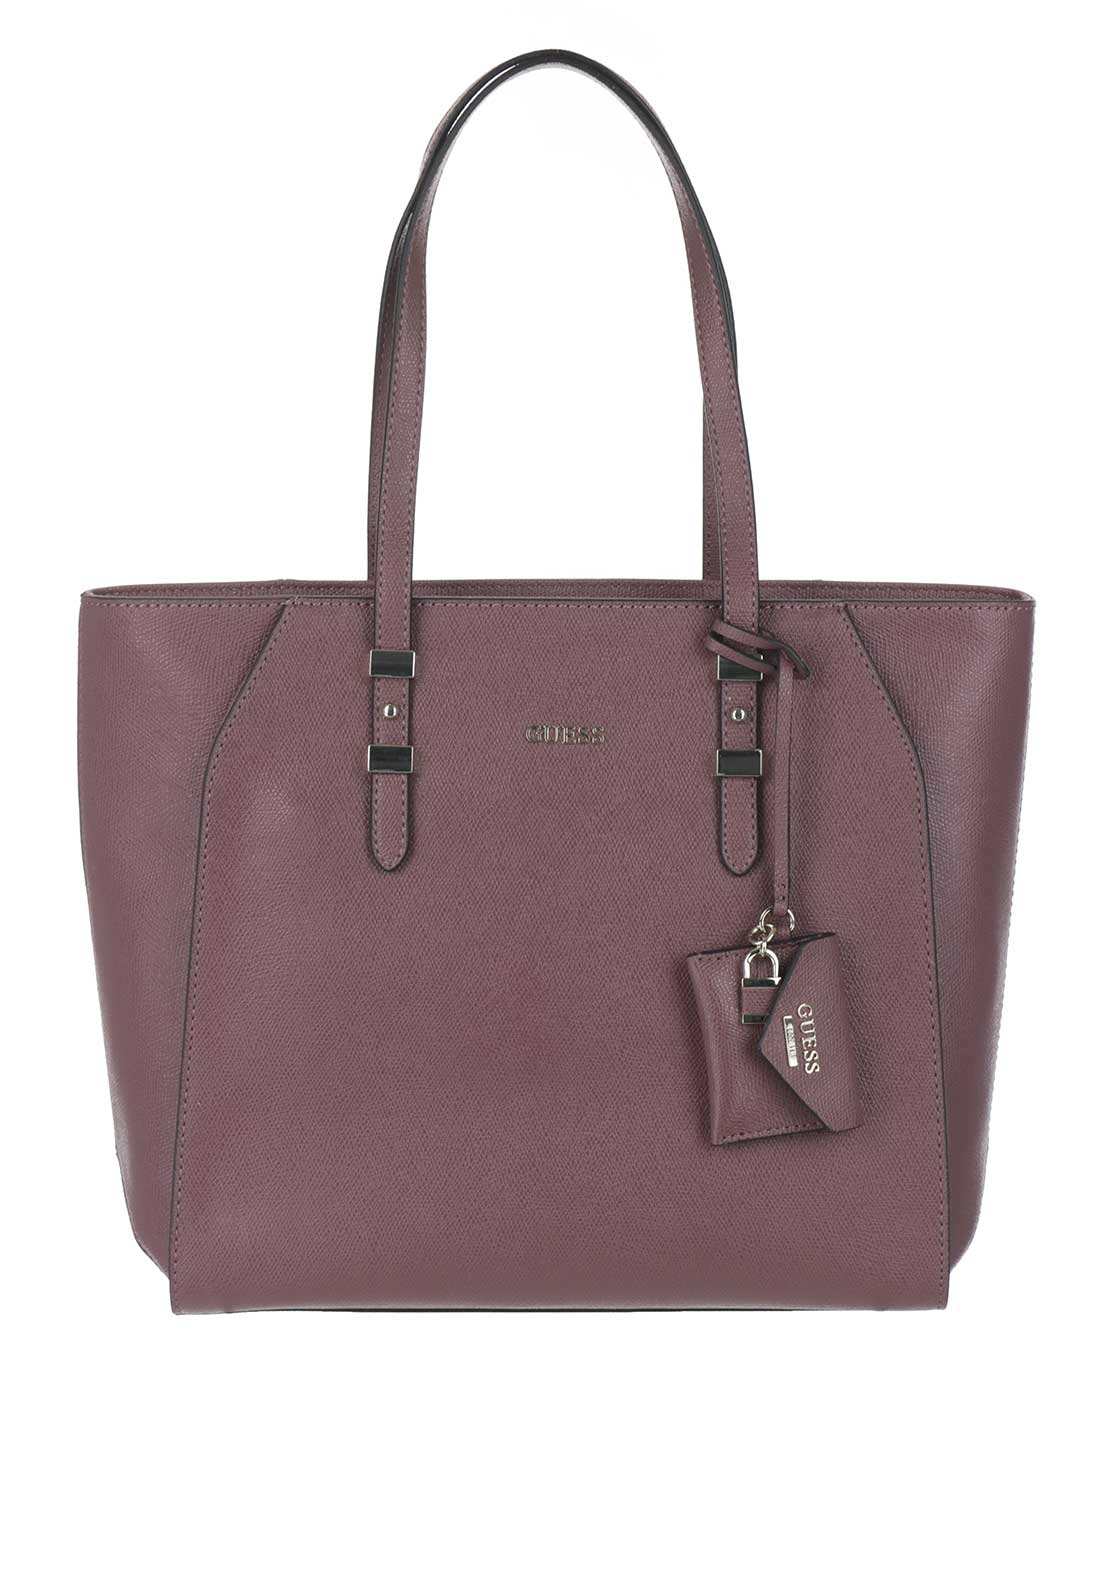 Guess Gia Shopper Tote Bag, Mauve